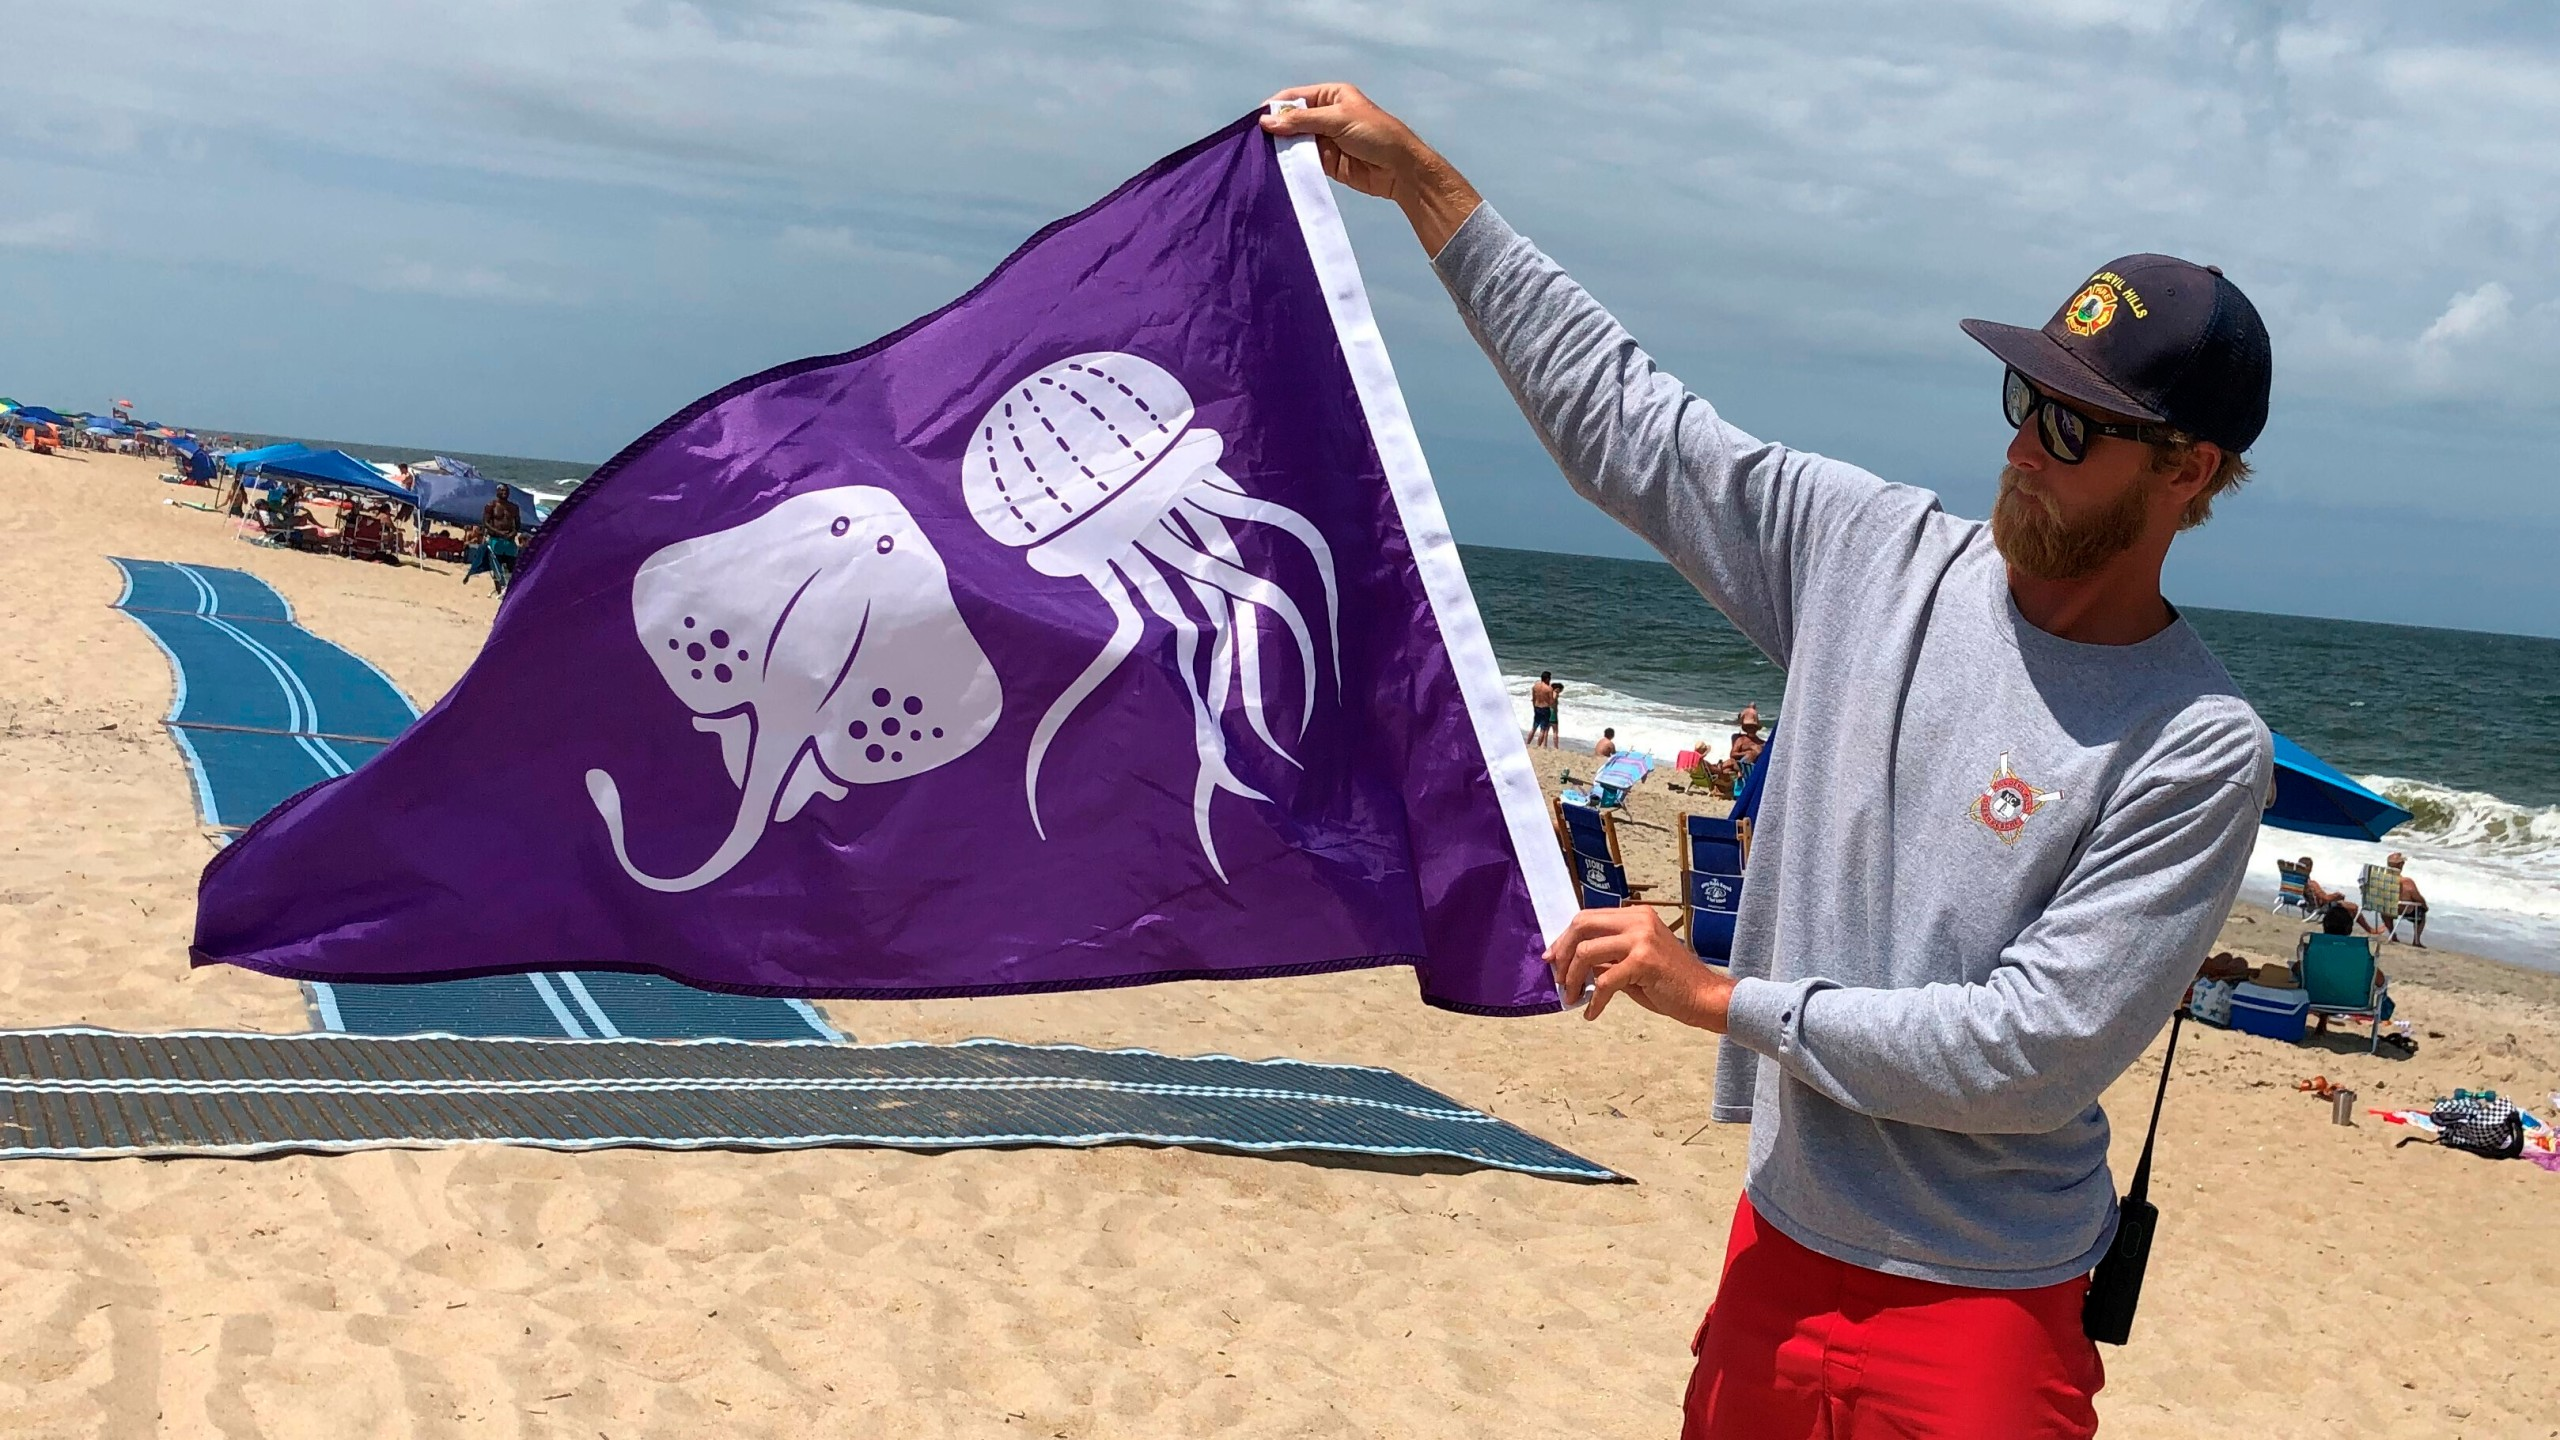 New Flag Warns Of Jellyfish Stingrays On Outer Banks Beach Myfox8 Com